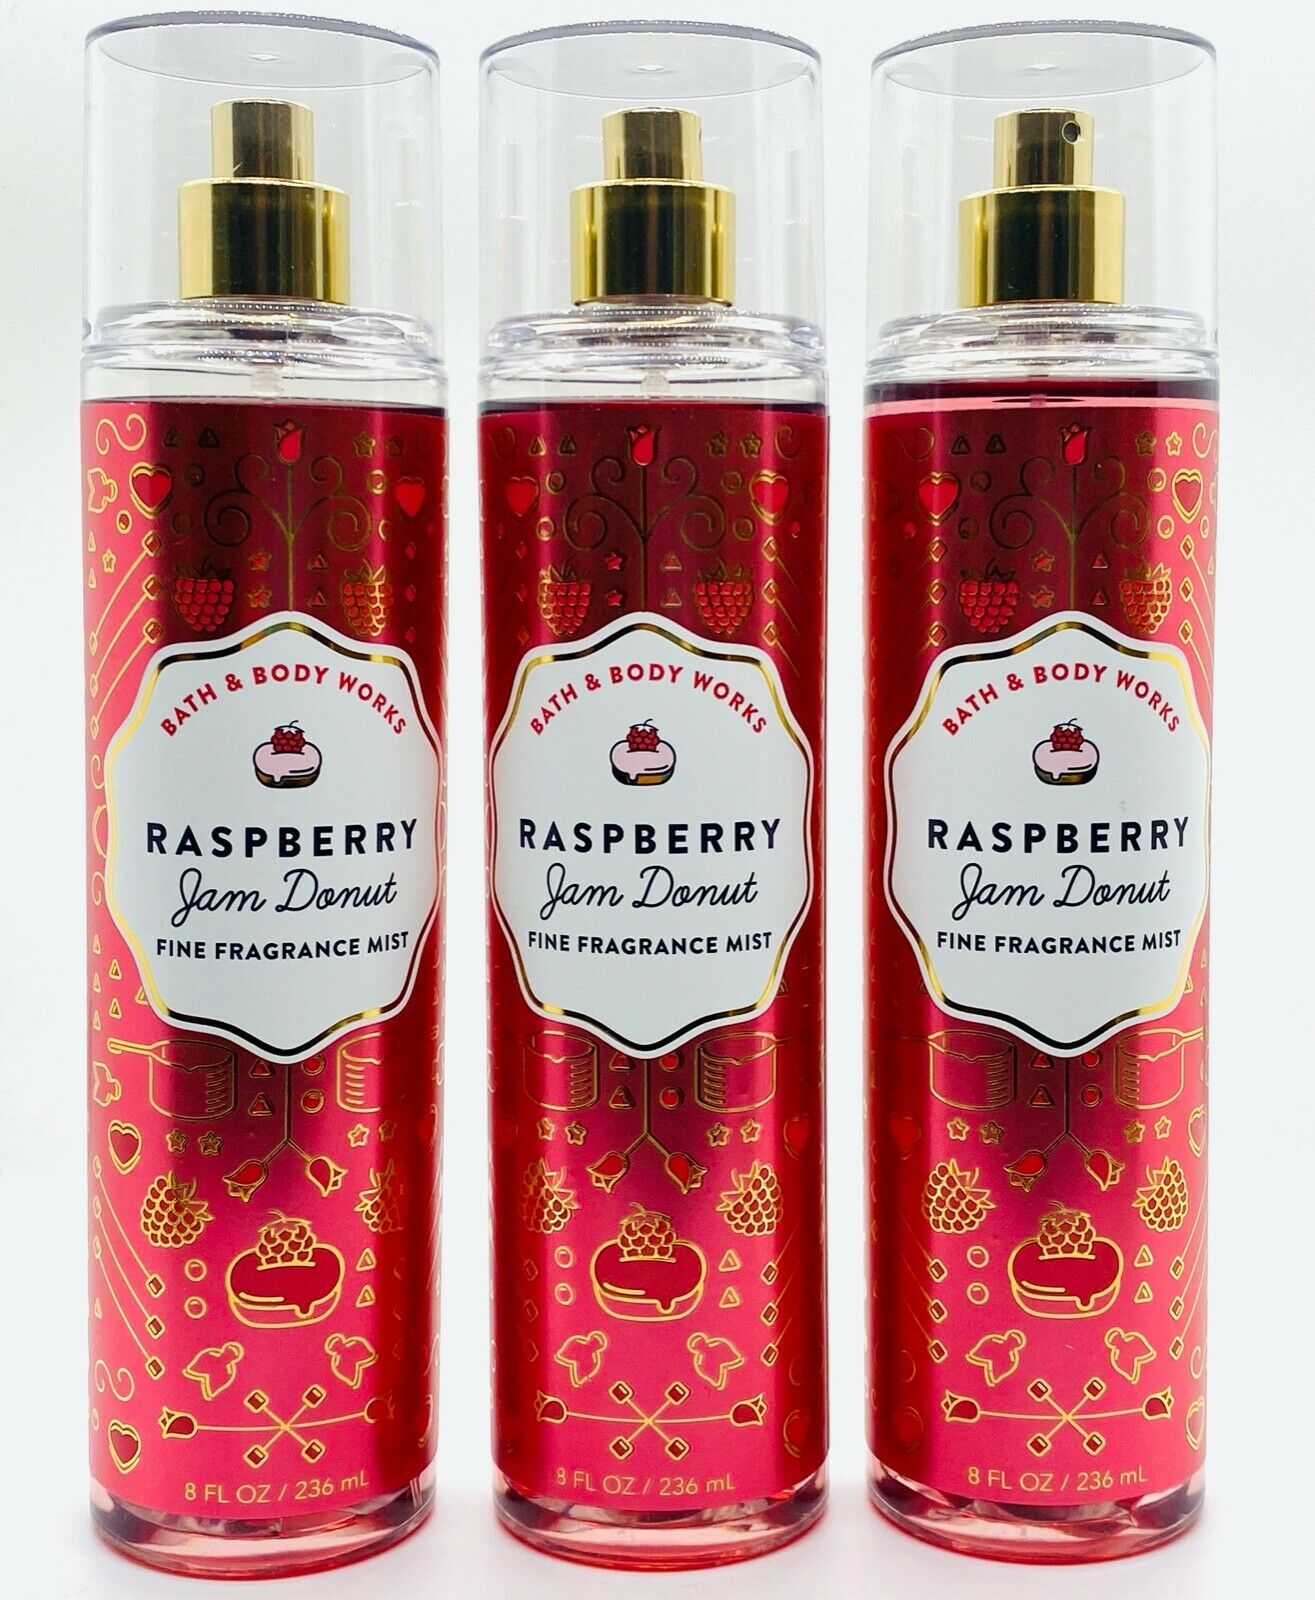 Primary image for 3-Pack Bath Body Works Raspberry Jam Donut Fine Fragrance Mist Spray 8 fl.oz